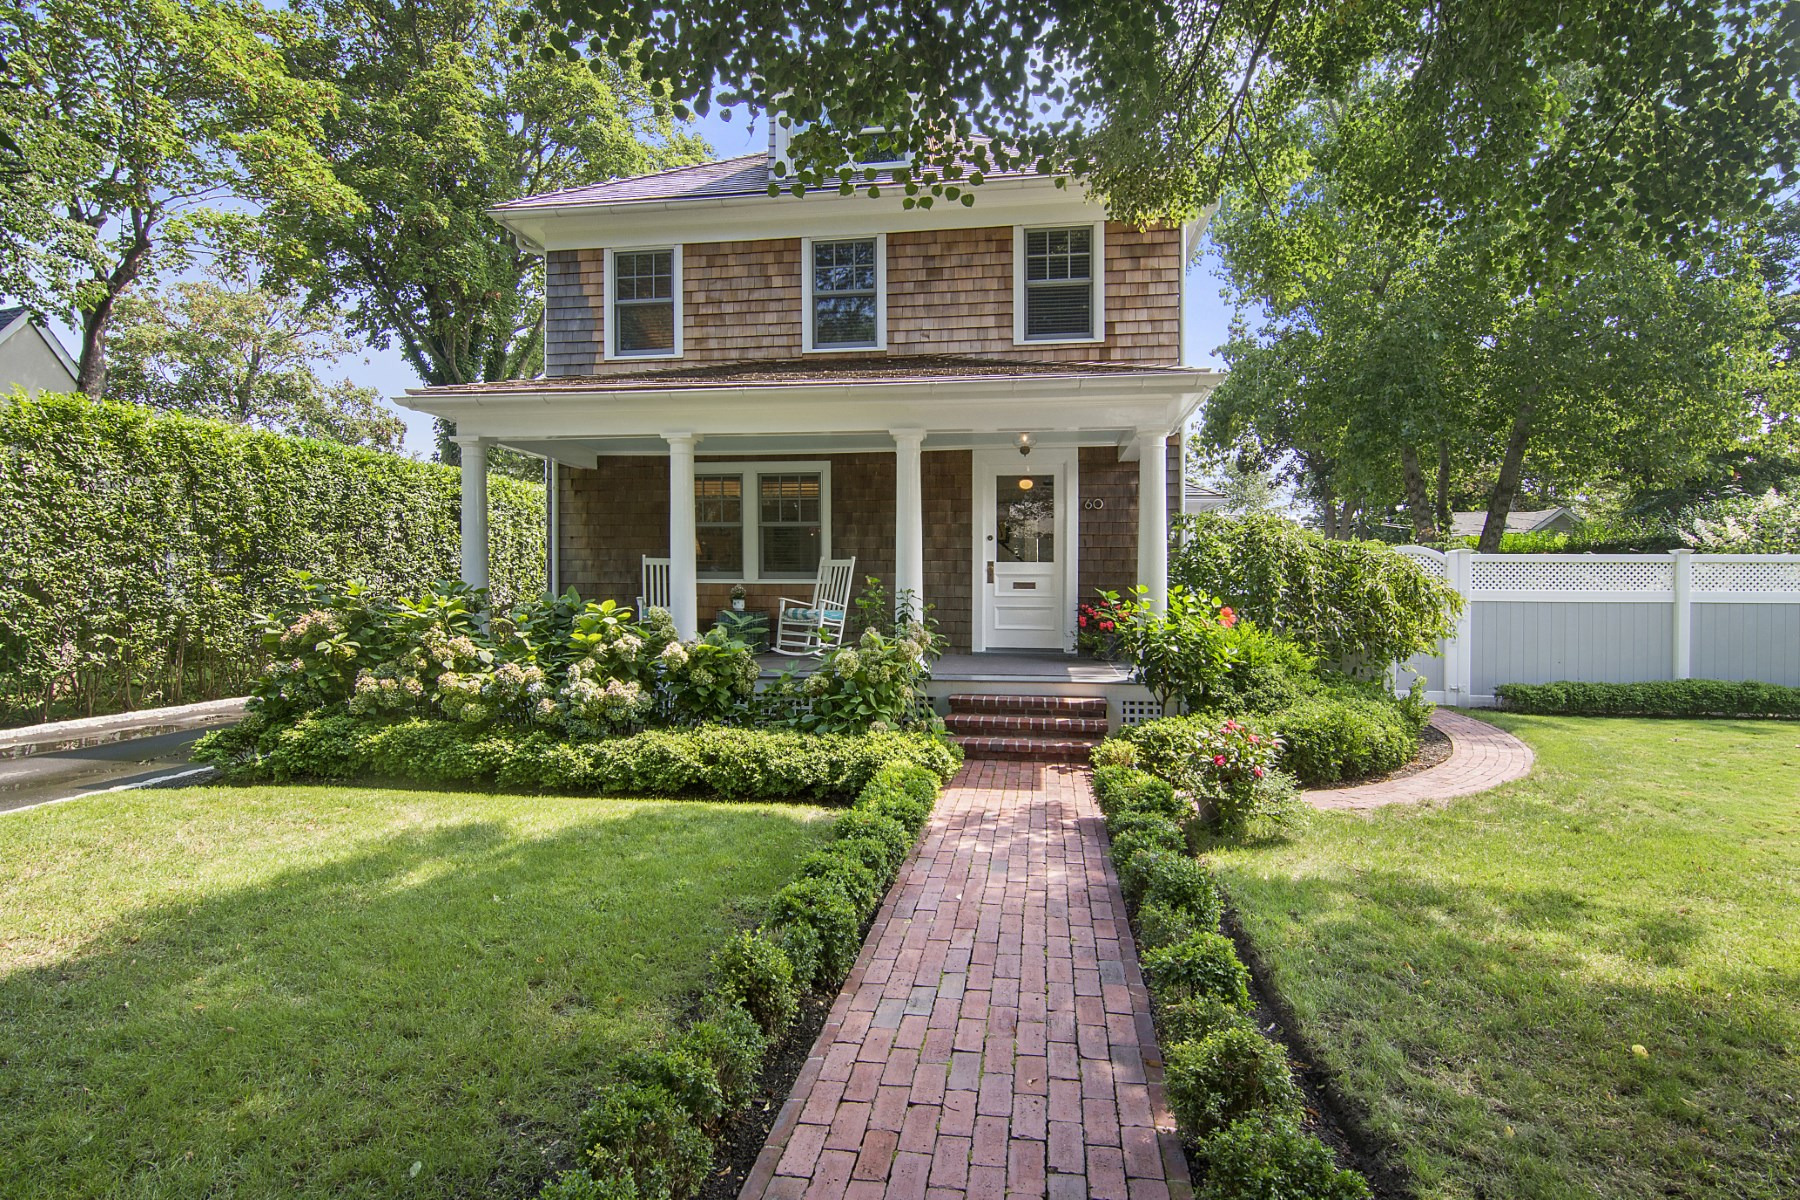 Single Family Home for Sale at A Jewel in Southampton Village 60 Cameron Street, Southampton, New York, 11968 United States